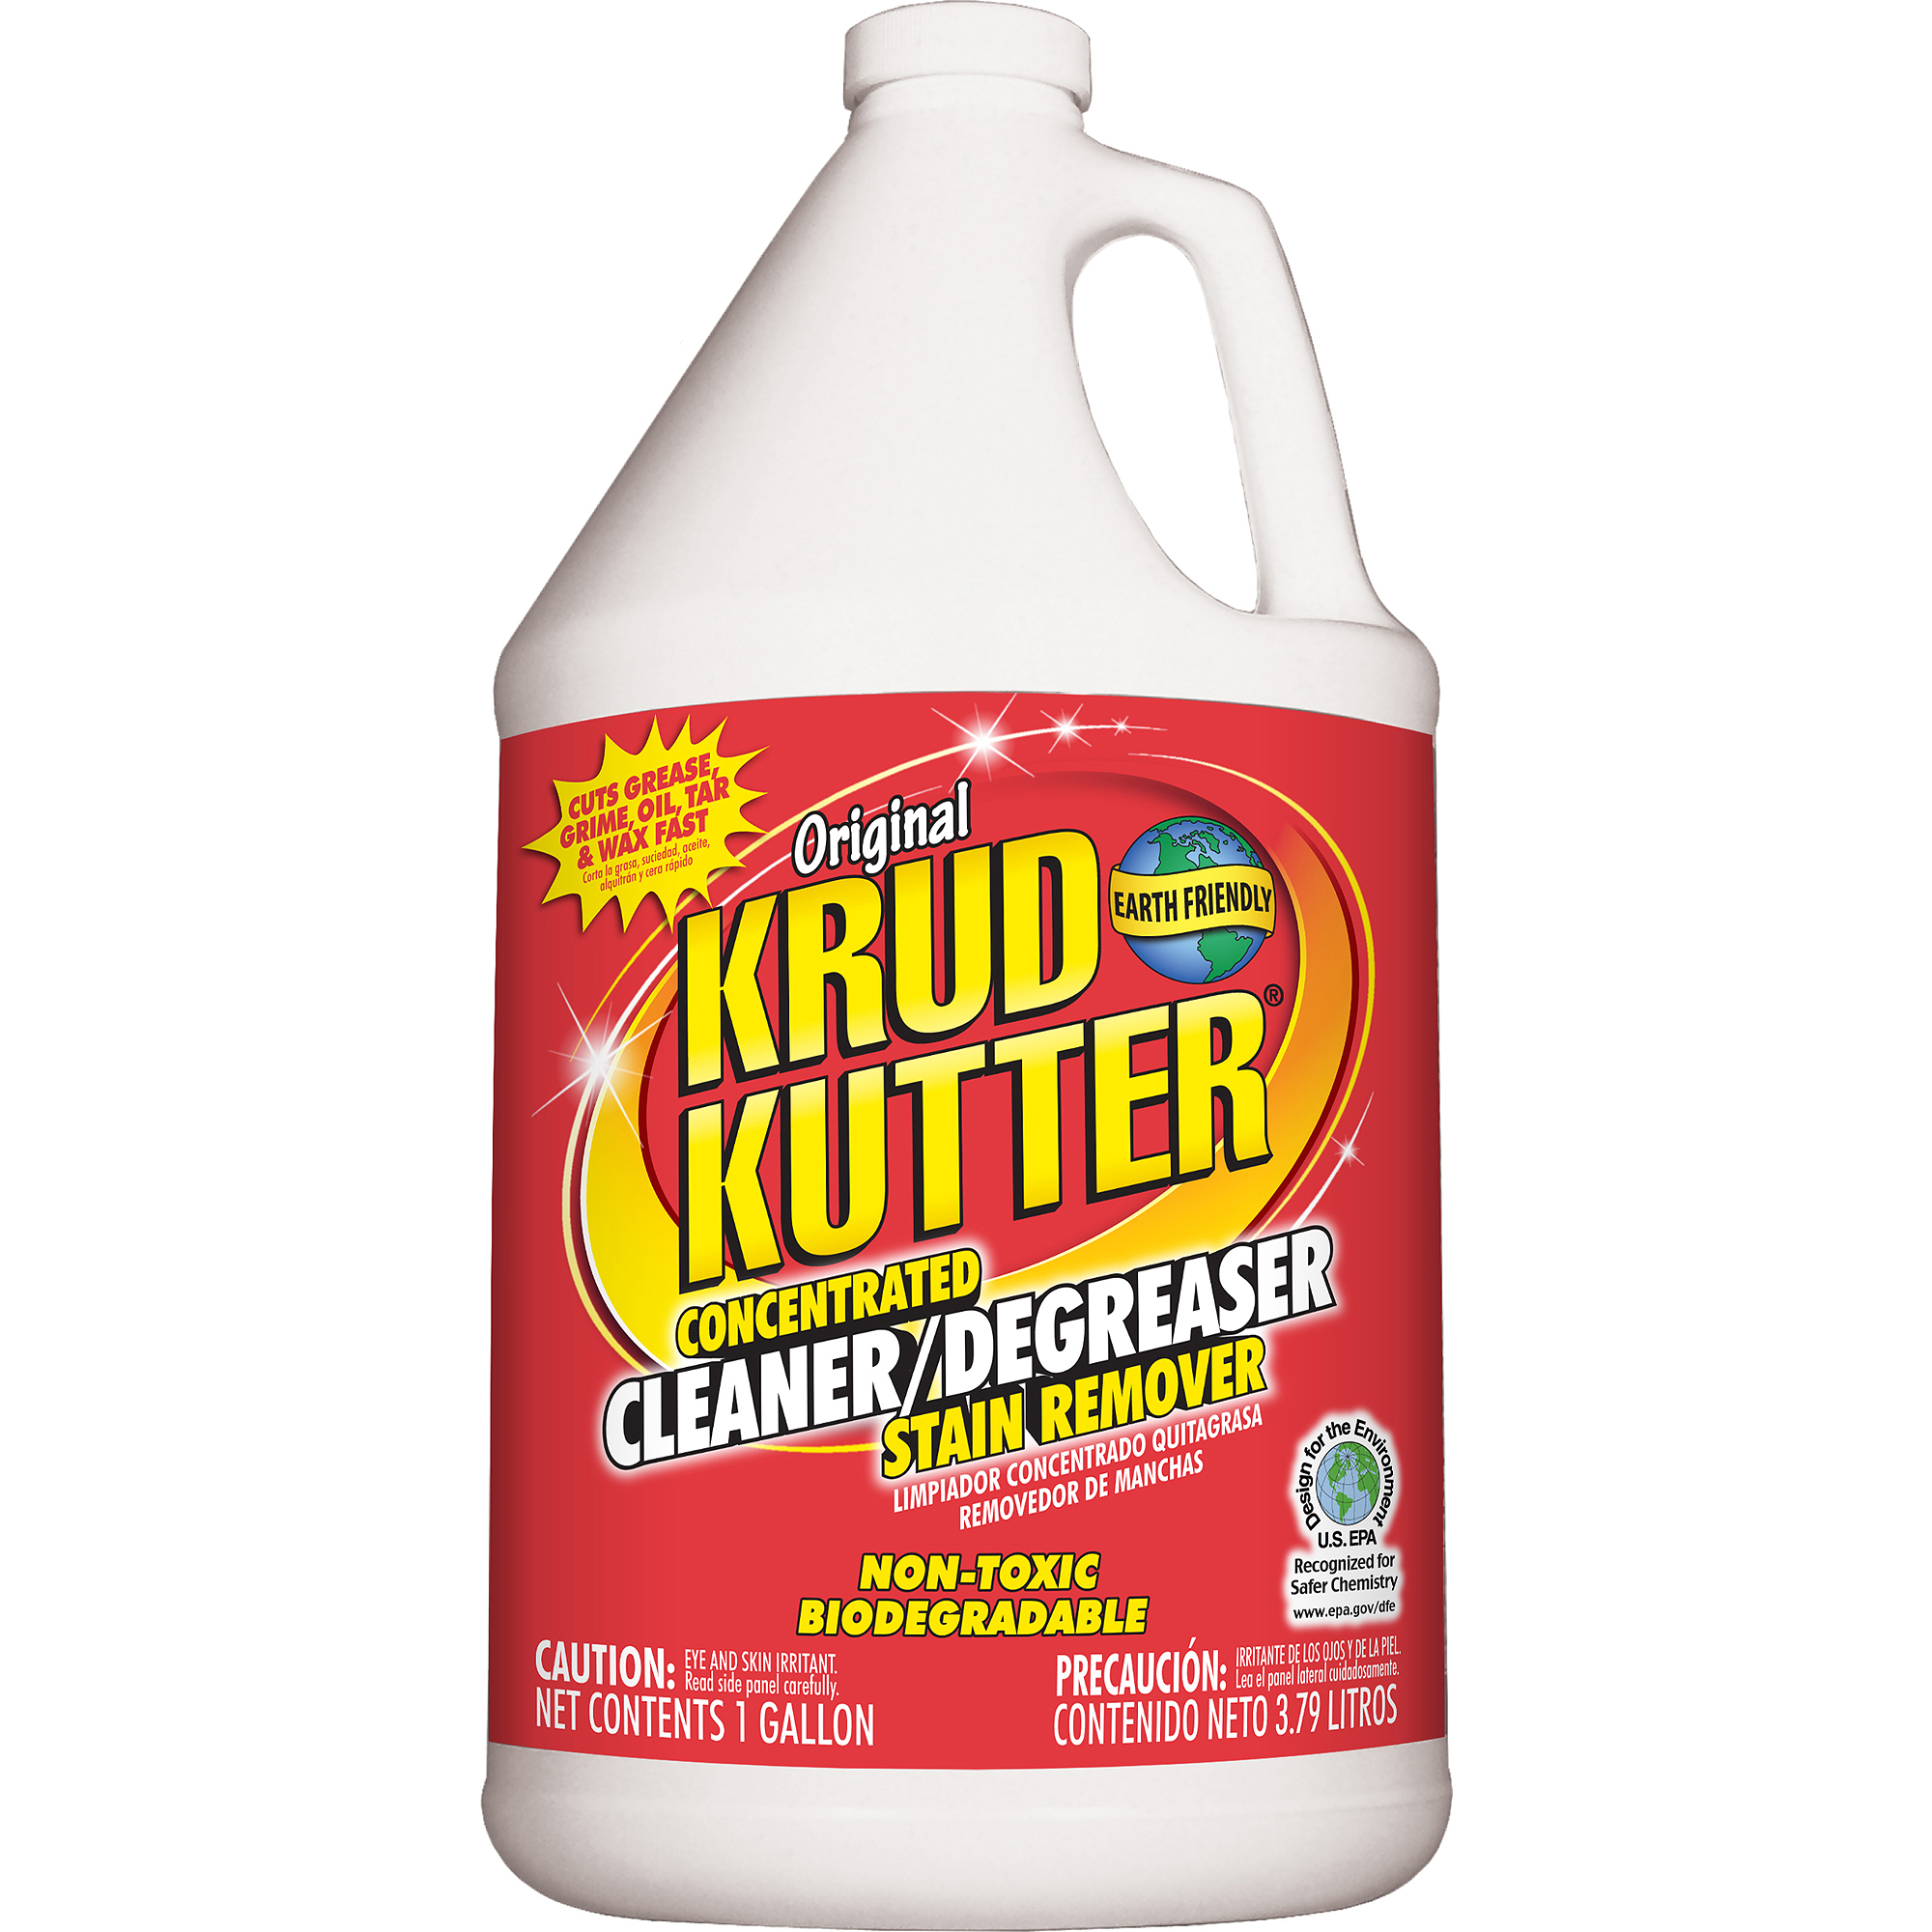 Krud Kutter Orginal Concentrated Cleaner/Degreaser and Stain Remover